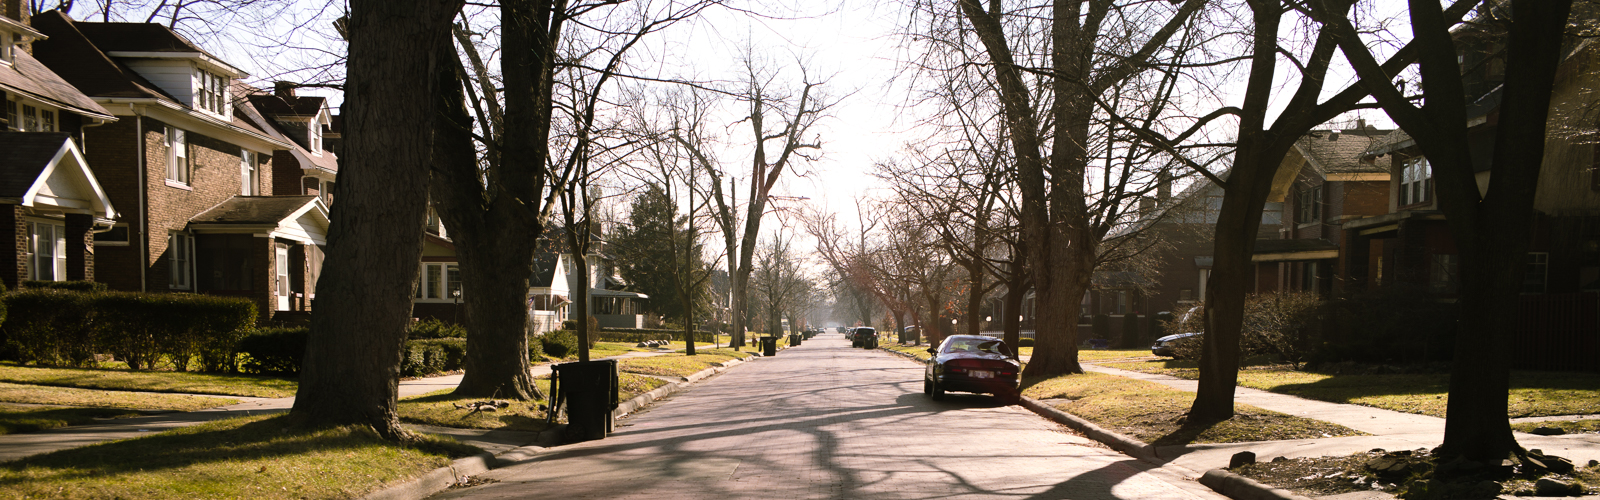 Residential street in Jefferson Chalmers <span class='image-credits'>Steve Koss</span>